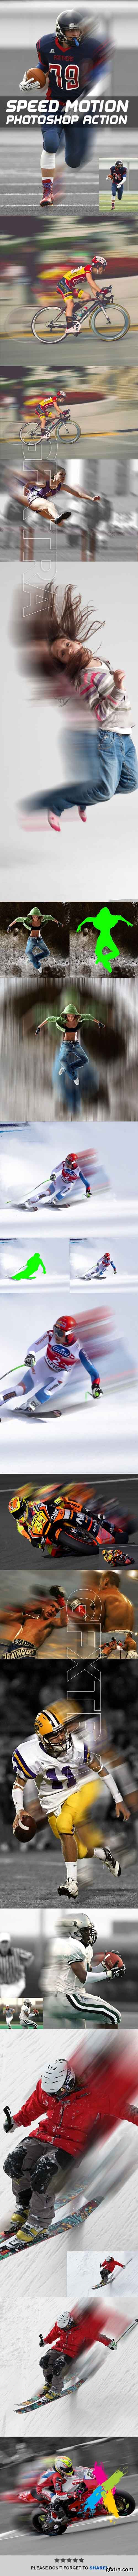 Graphicriver - Speed Motion Photoshop Action 20158455